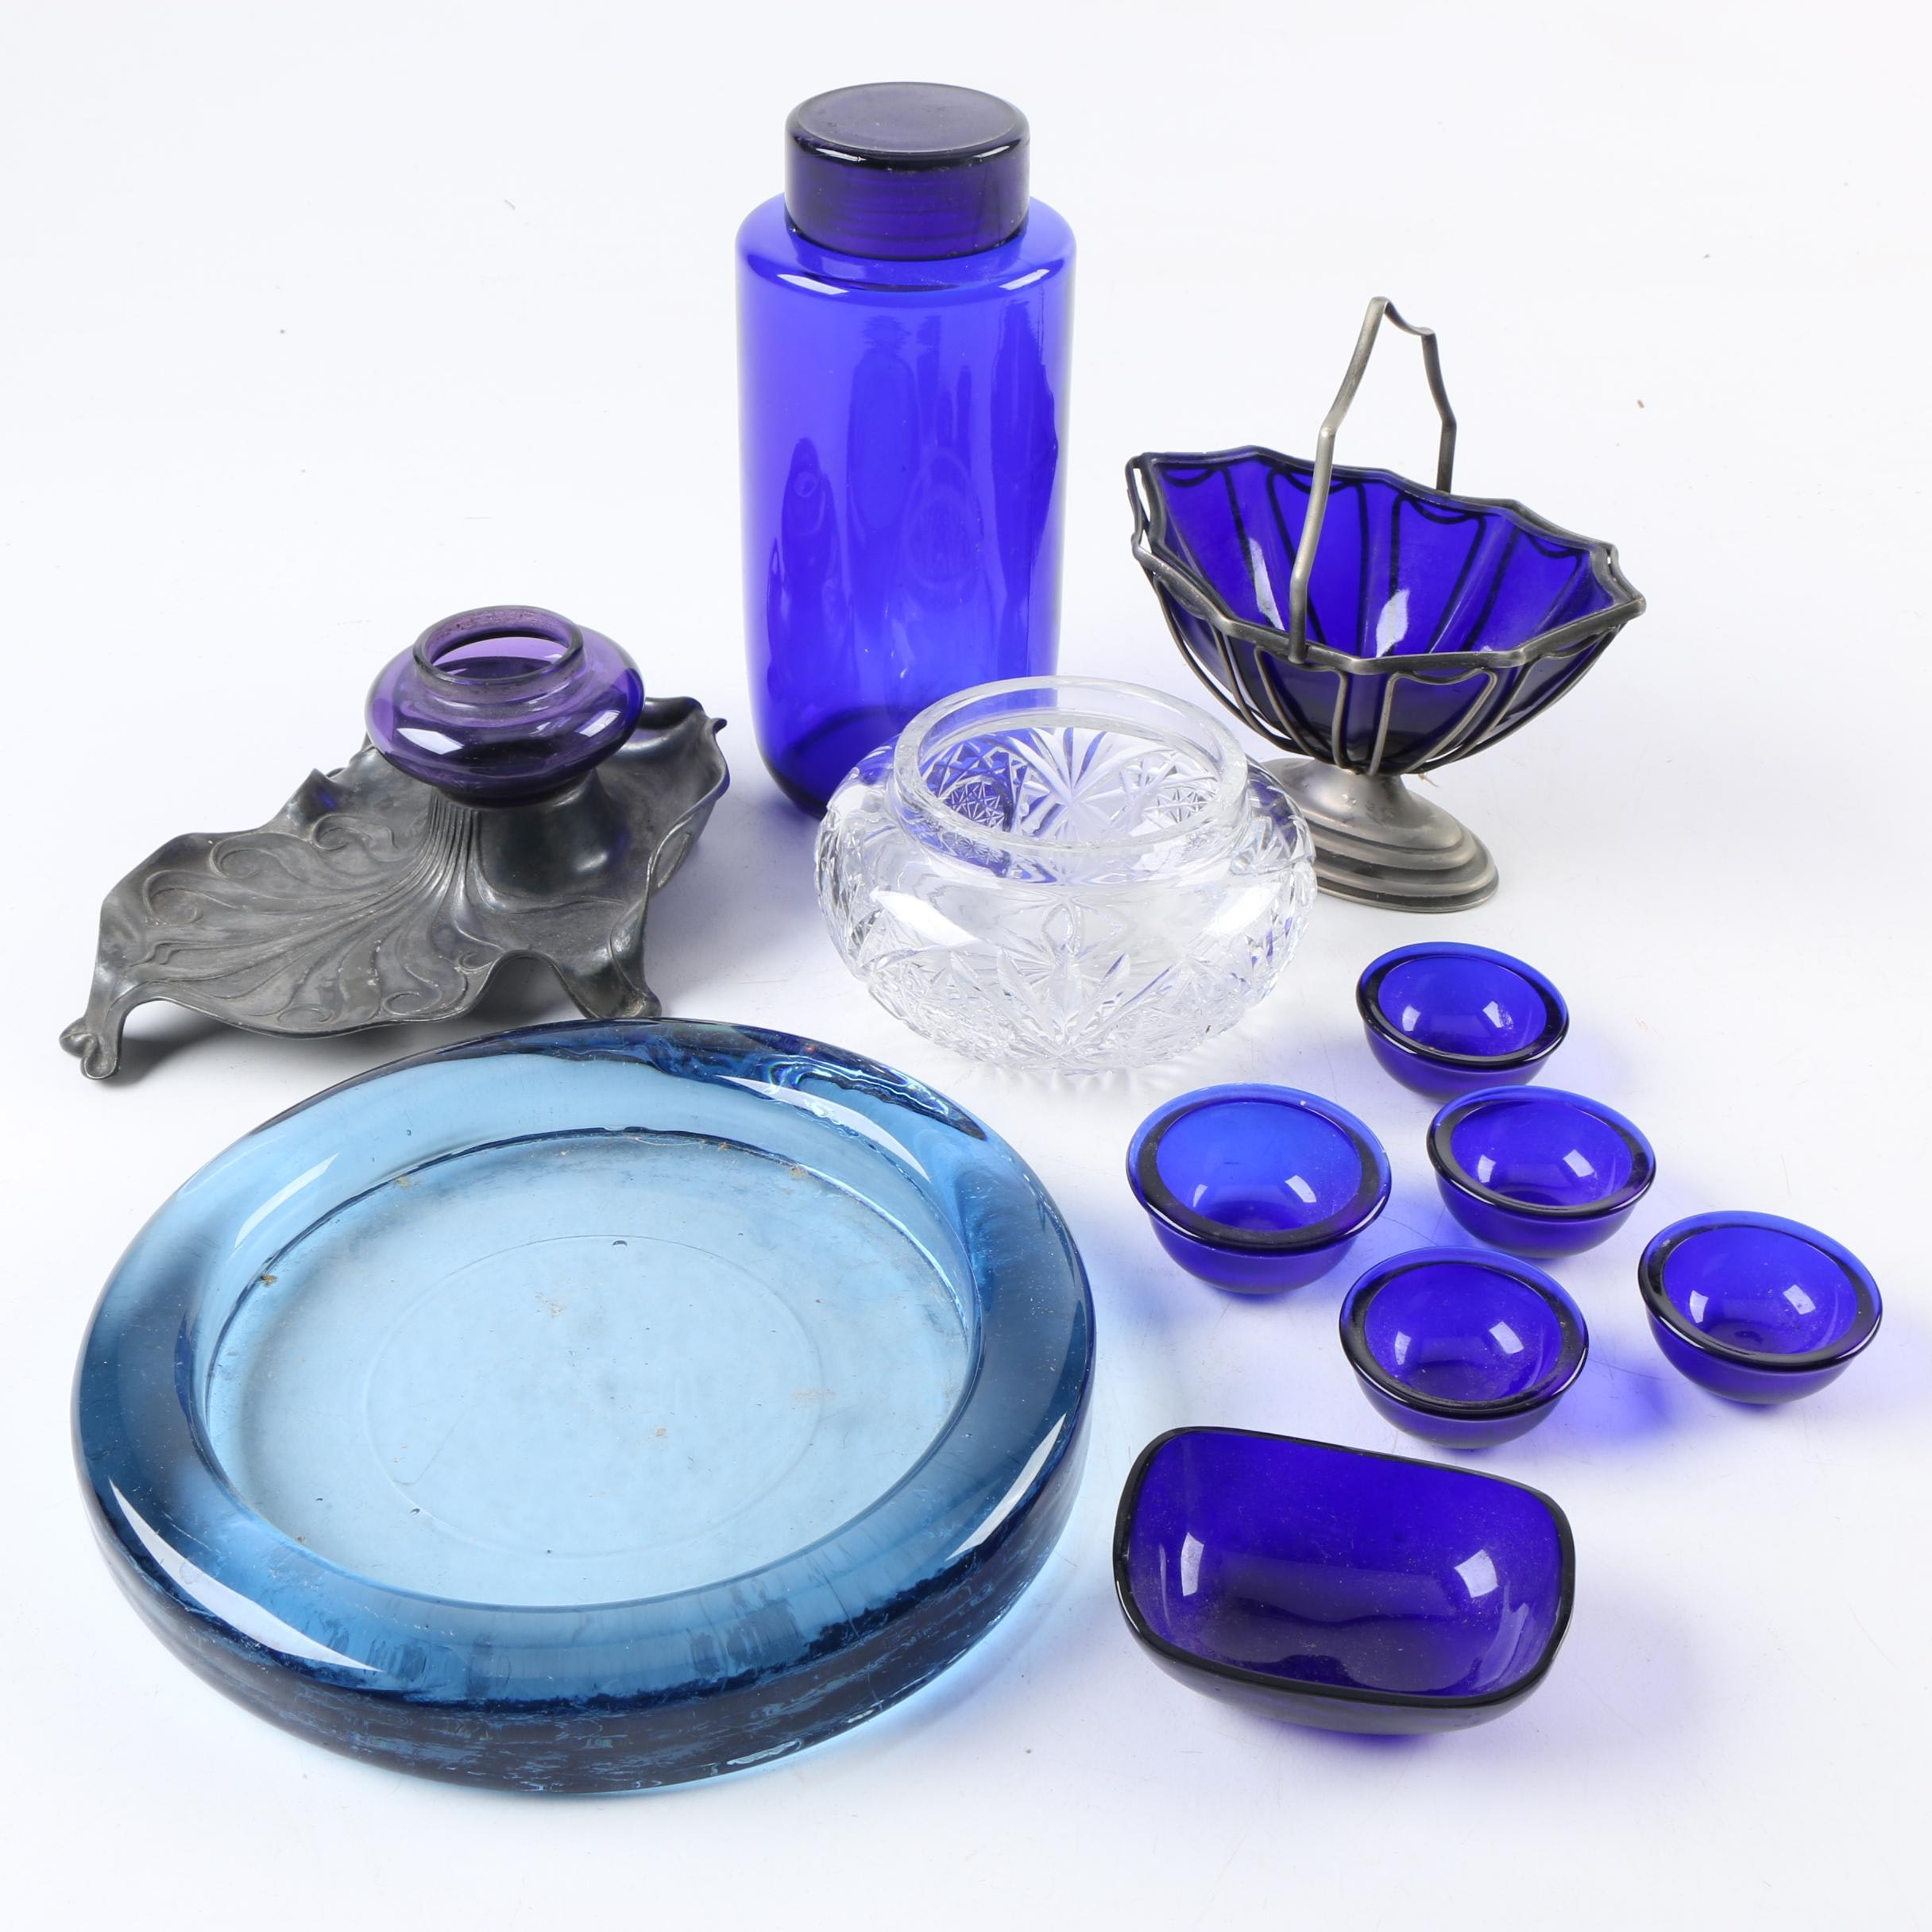 Vintage Glass Inkwell, Vase, Ash Receiver and Tableware